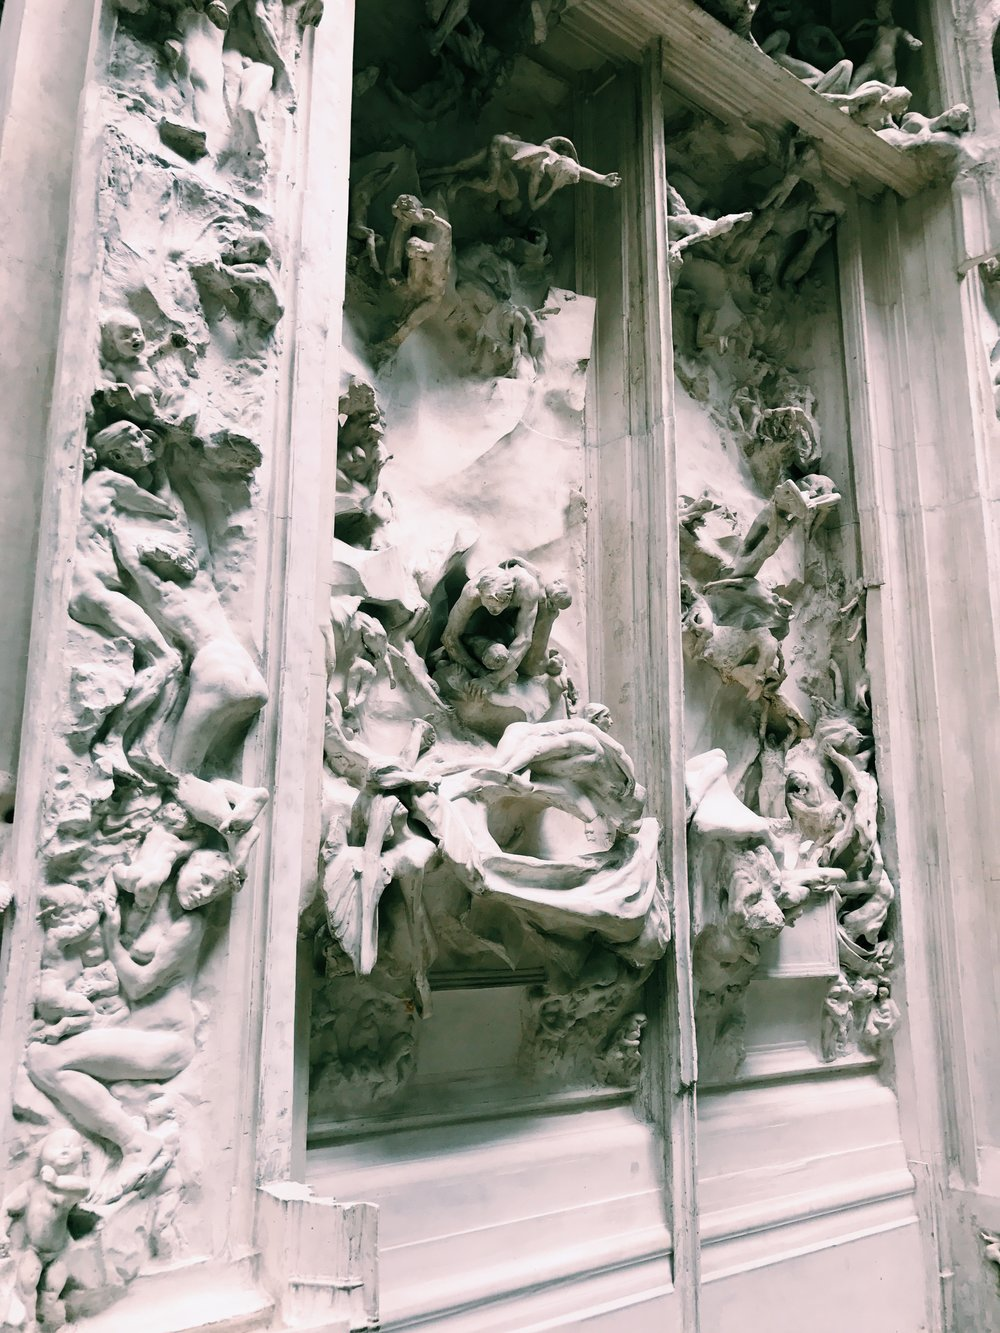 Cast from the Gates of Hell by Auguste Rodin